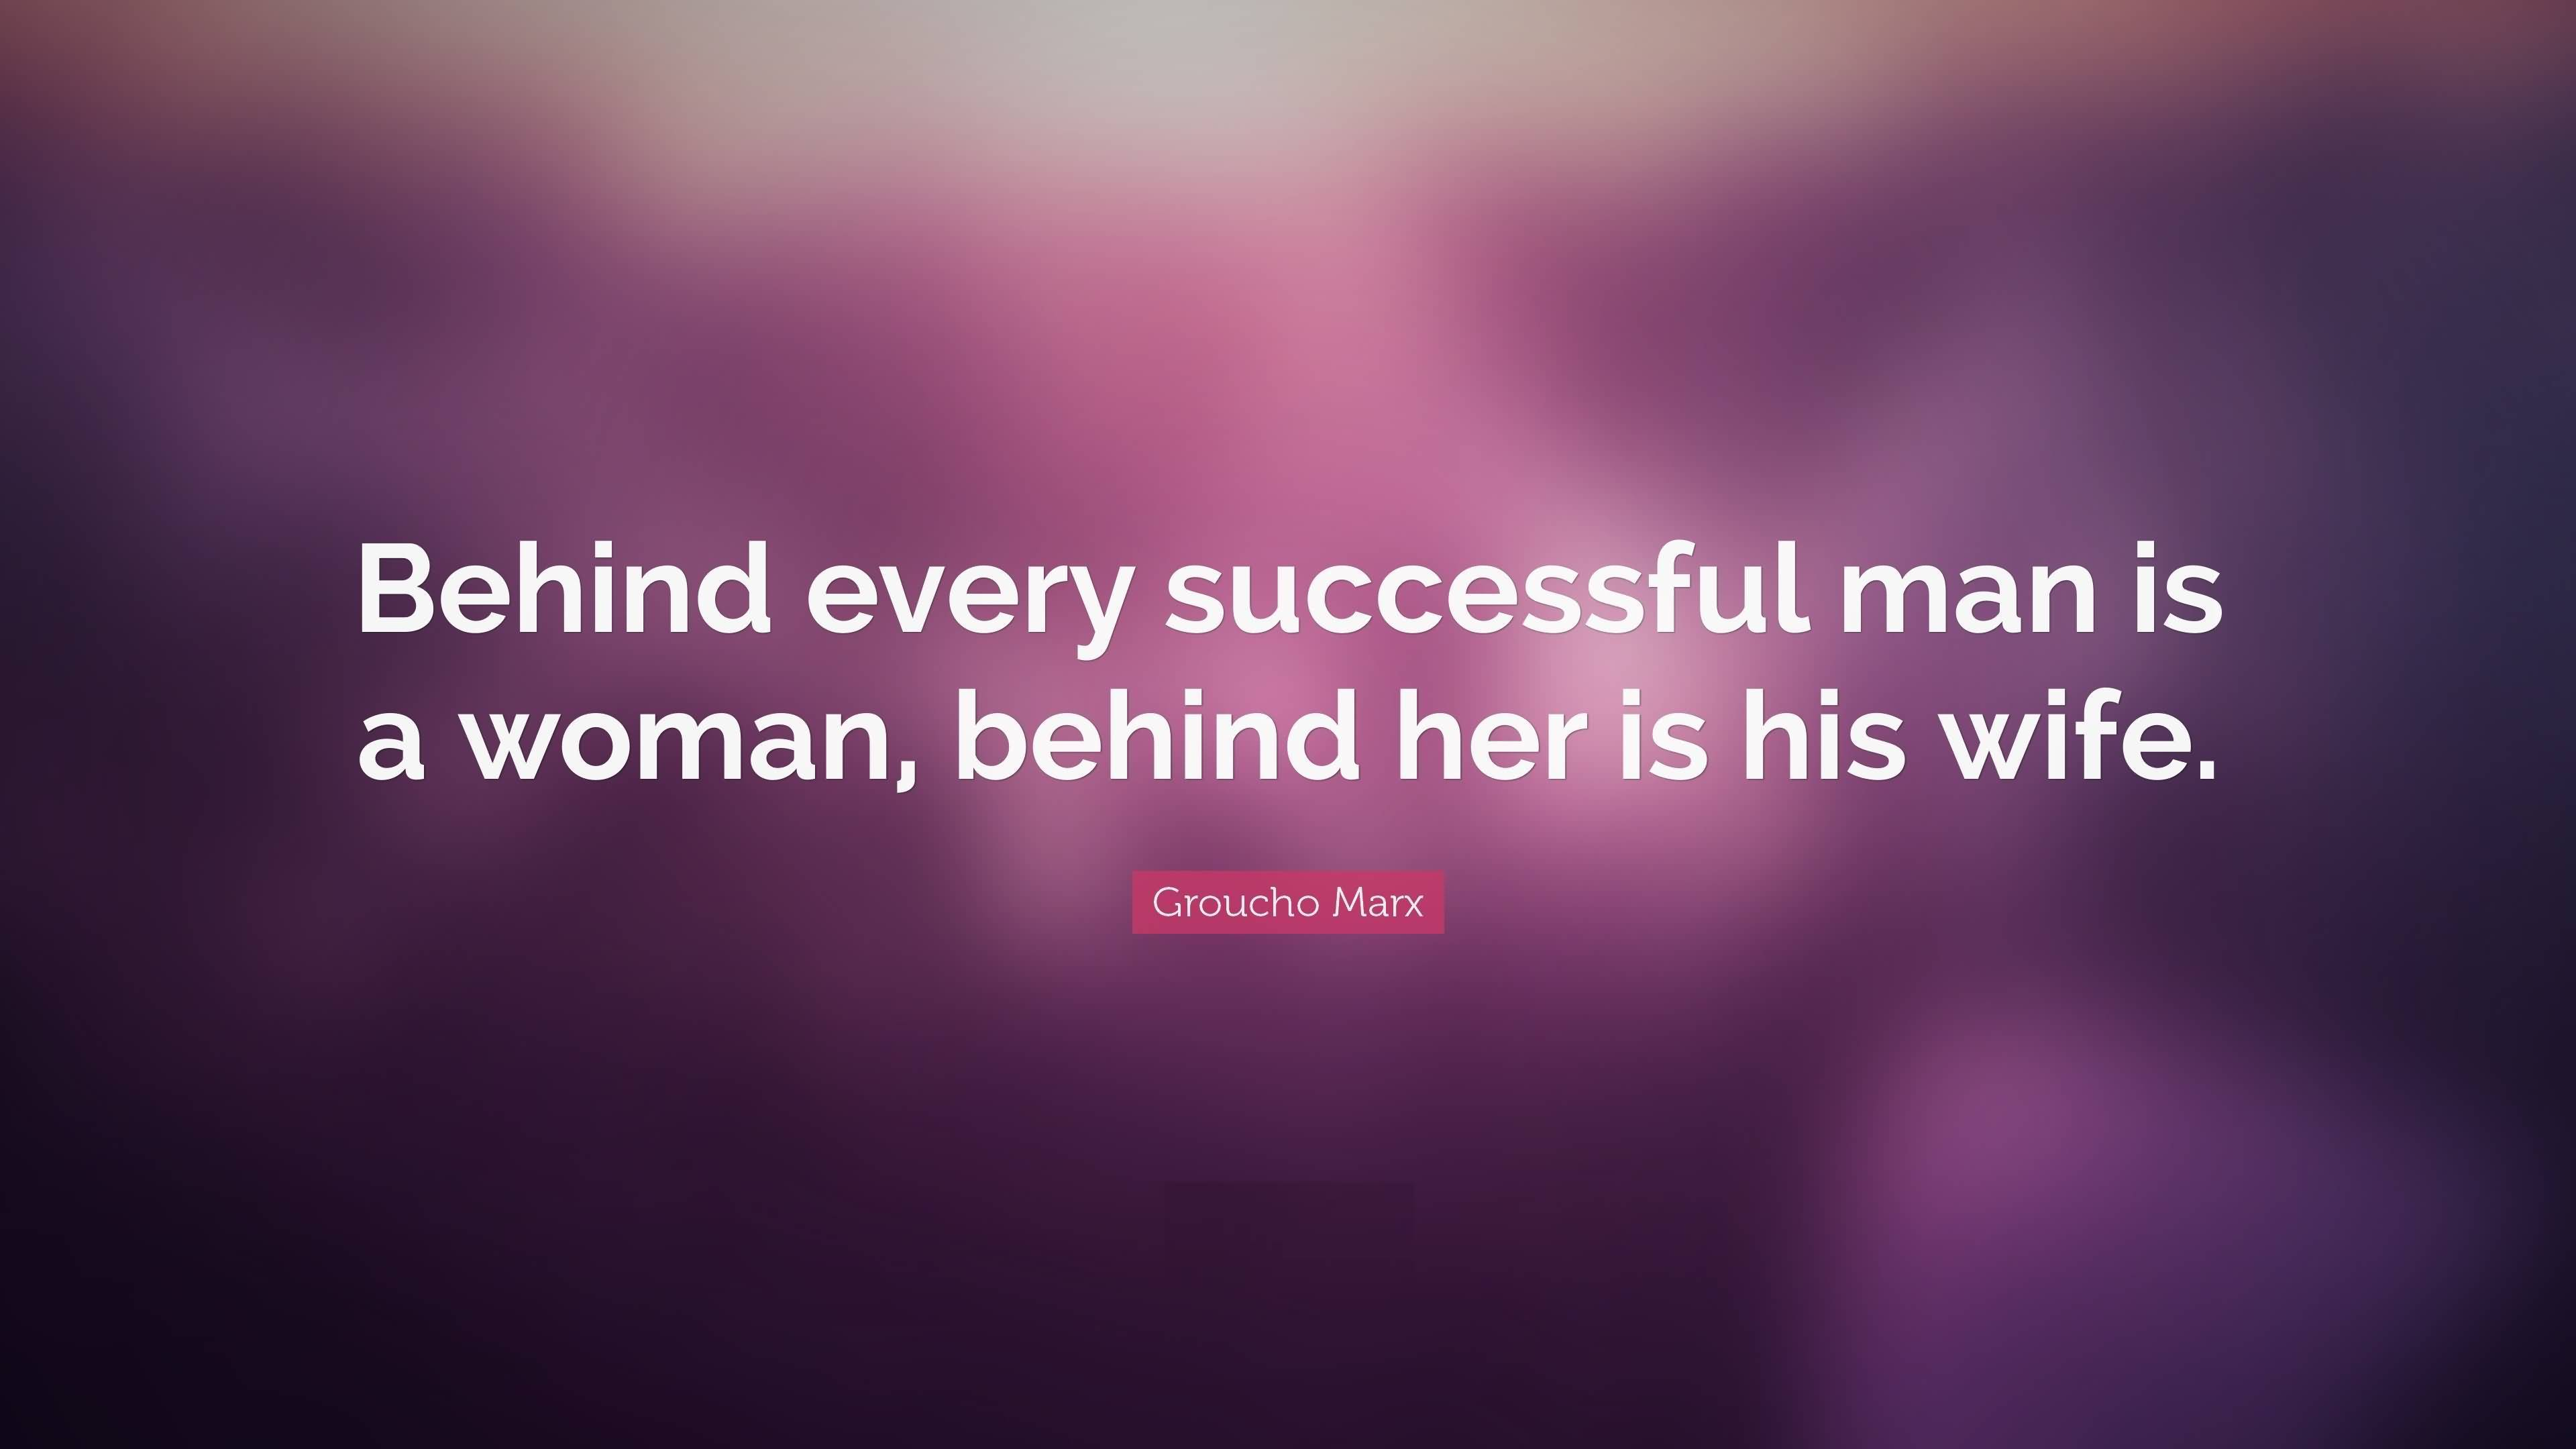 Wife Quotes Behind every successful man is a woman, behind her is his wife. Groucho Marx